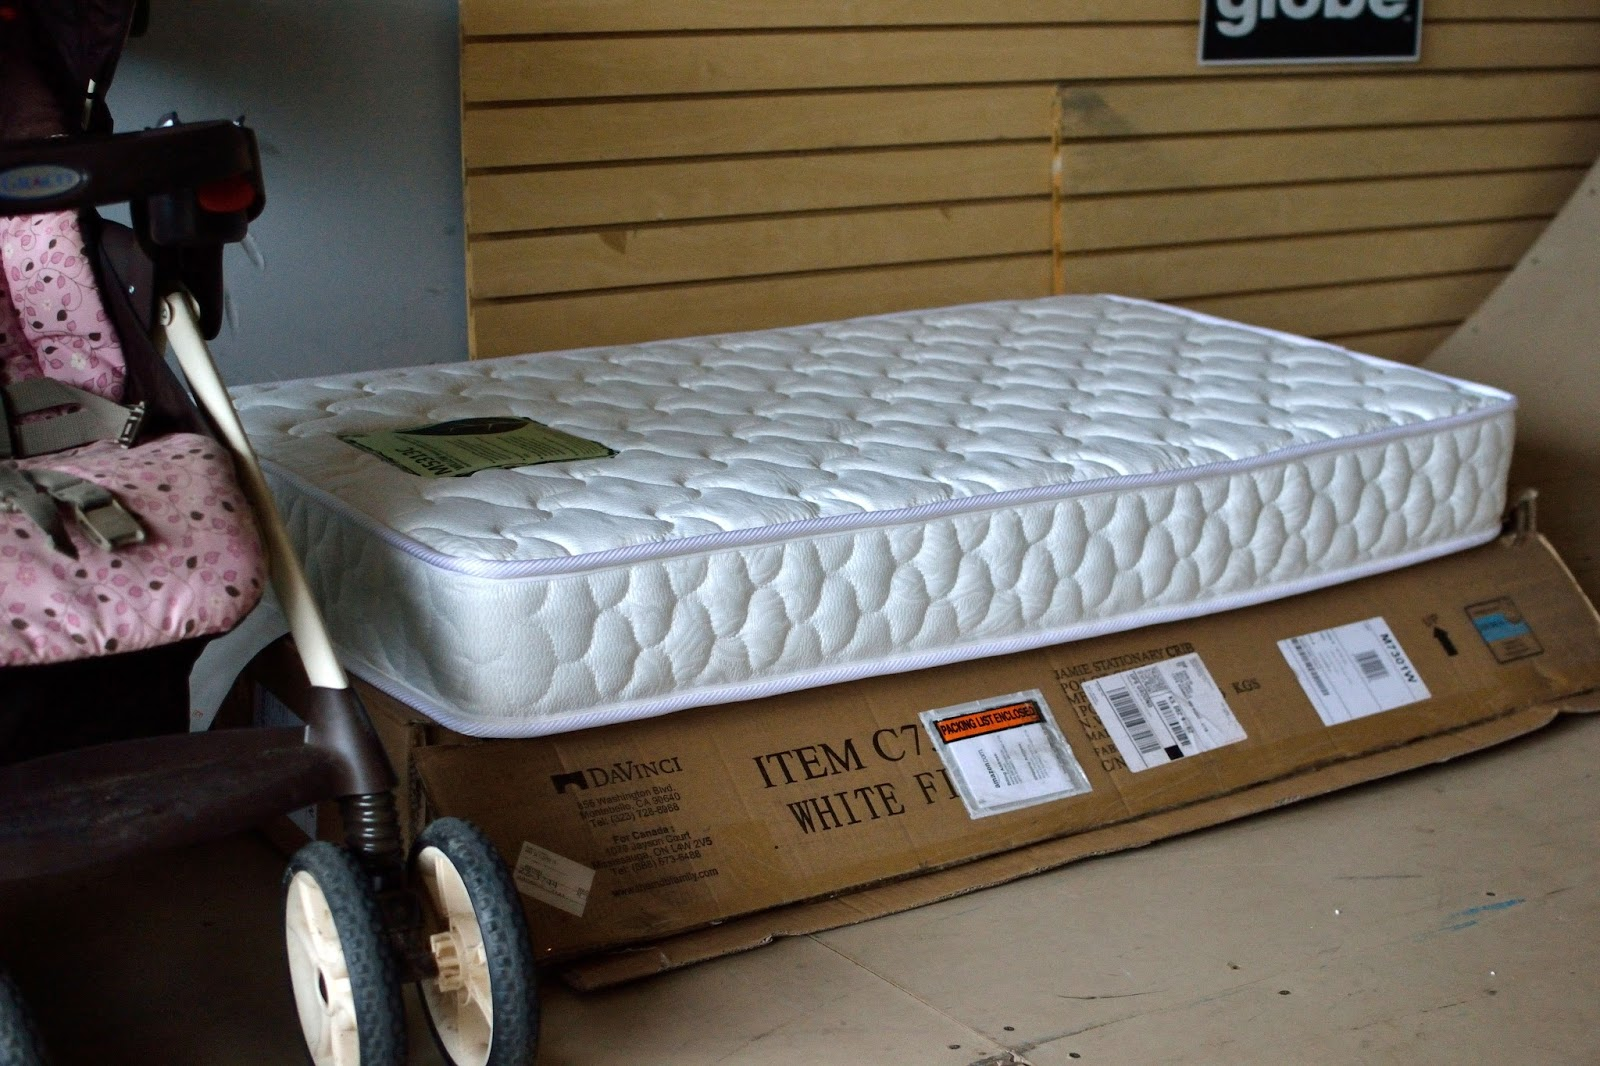 Here S Mila Mattress Which Although It Still A Natural Brand I Wanted To Let Air Out Bit In Setting Where No Debris